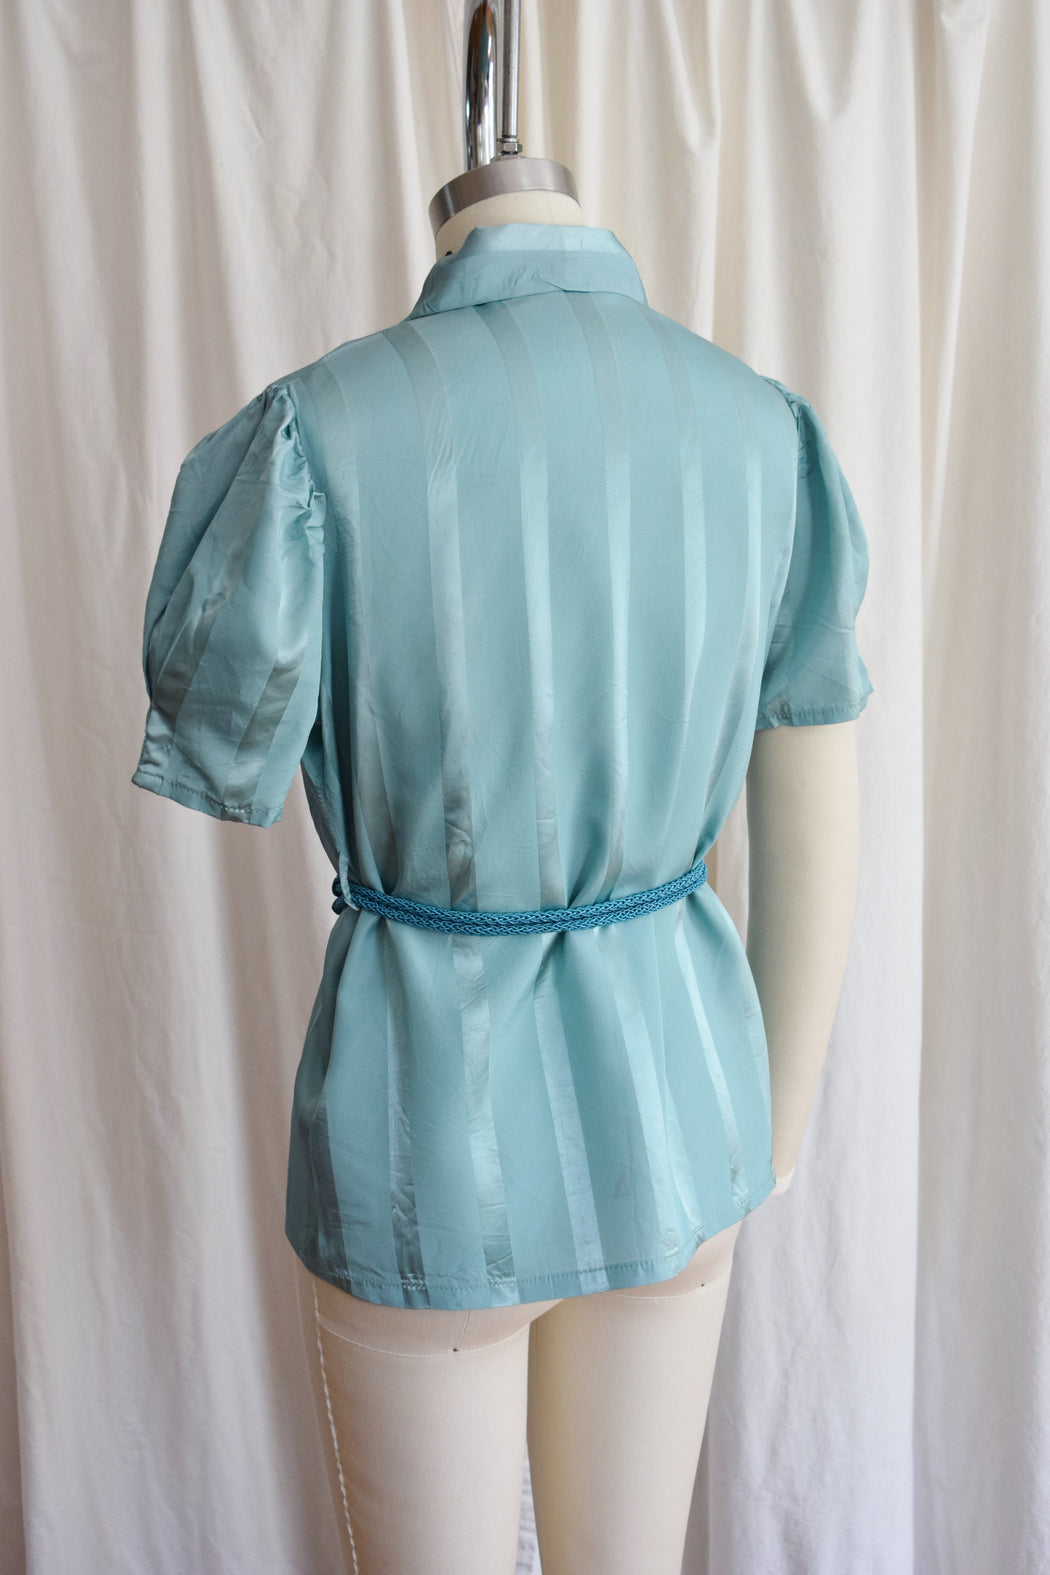 1940s Striped Teal Wrap Top / Loungewear Blouse with Belt